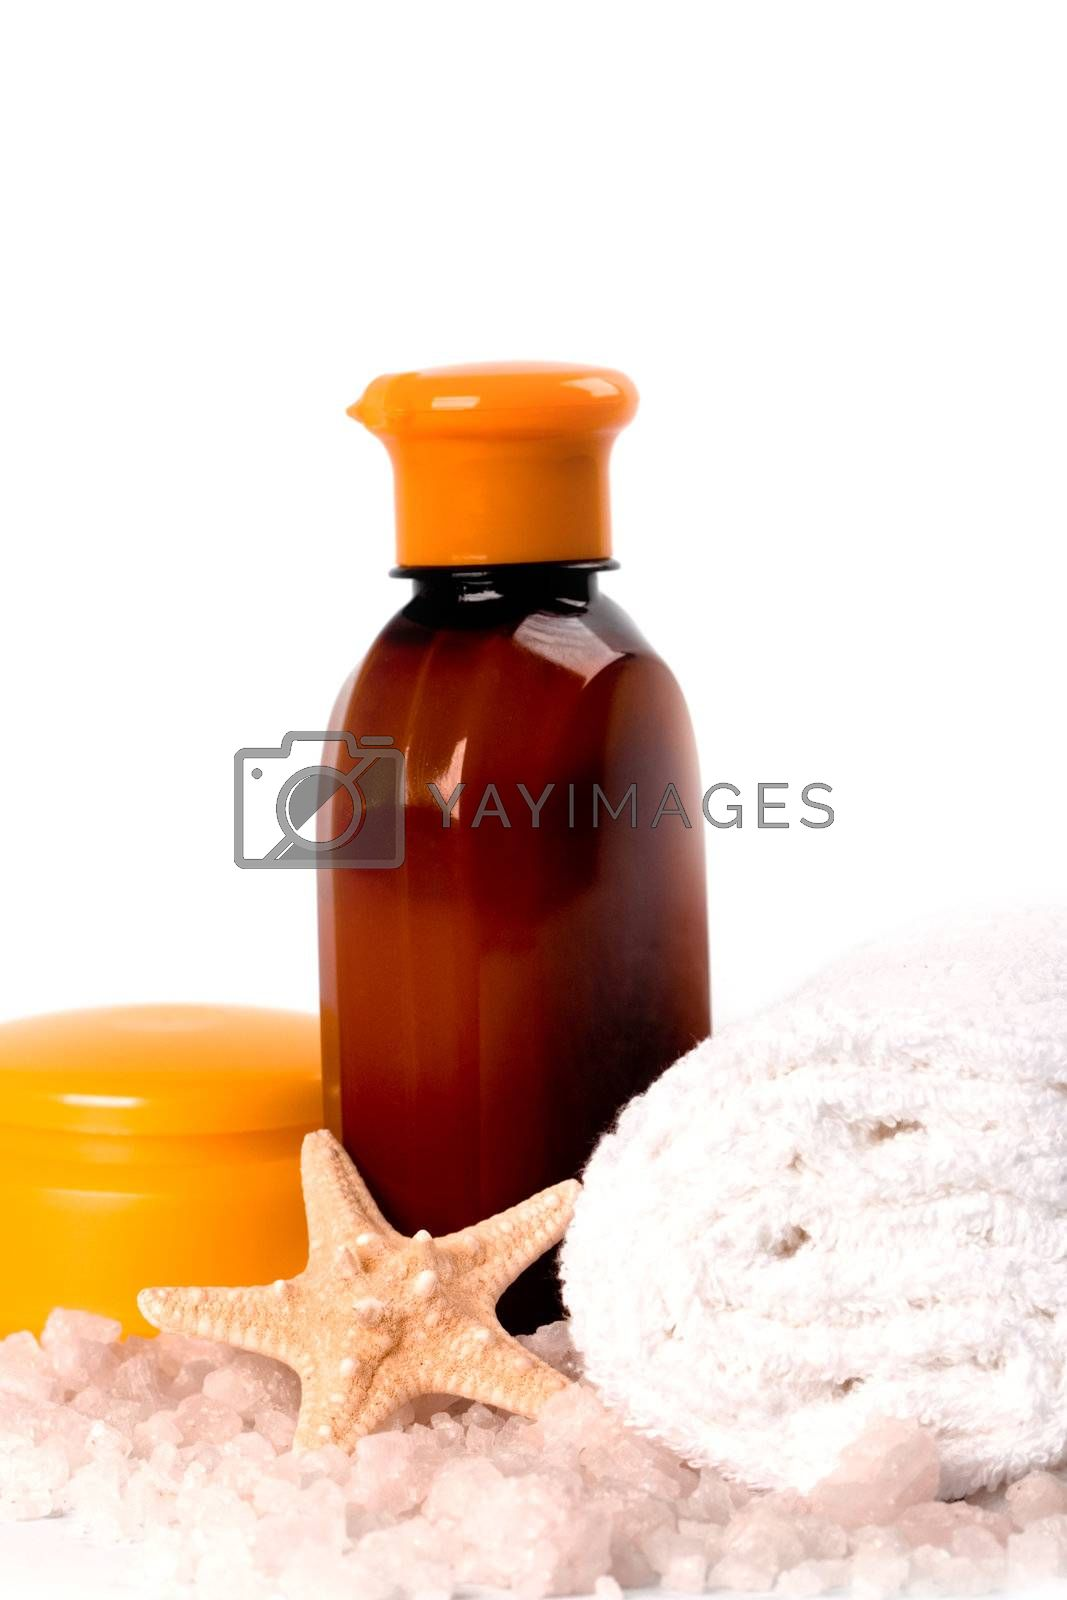 spa products: sea salt, creme, towel, body lotion and seastar closeup on white background